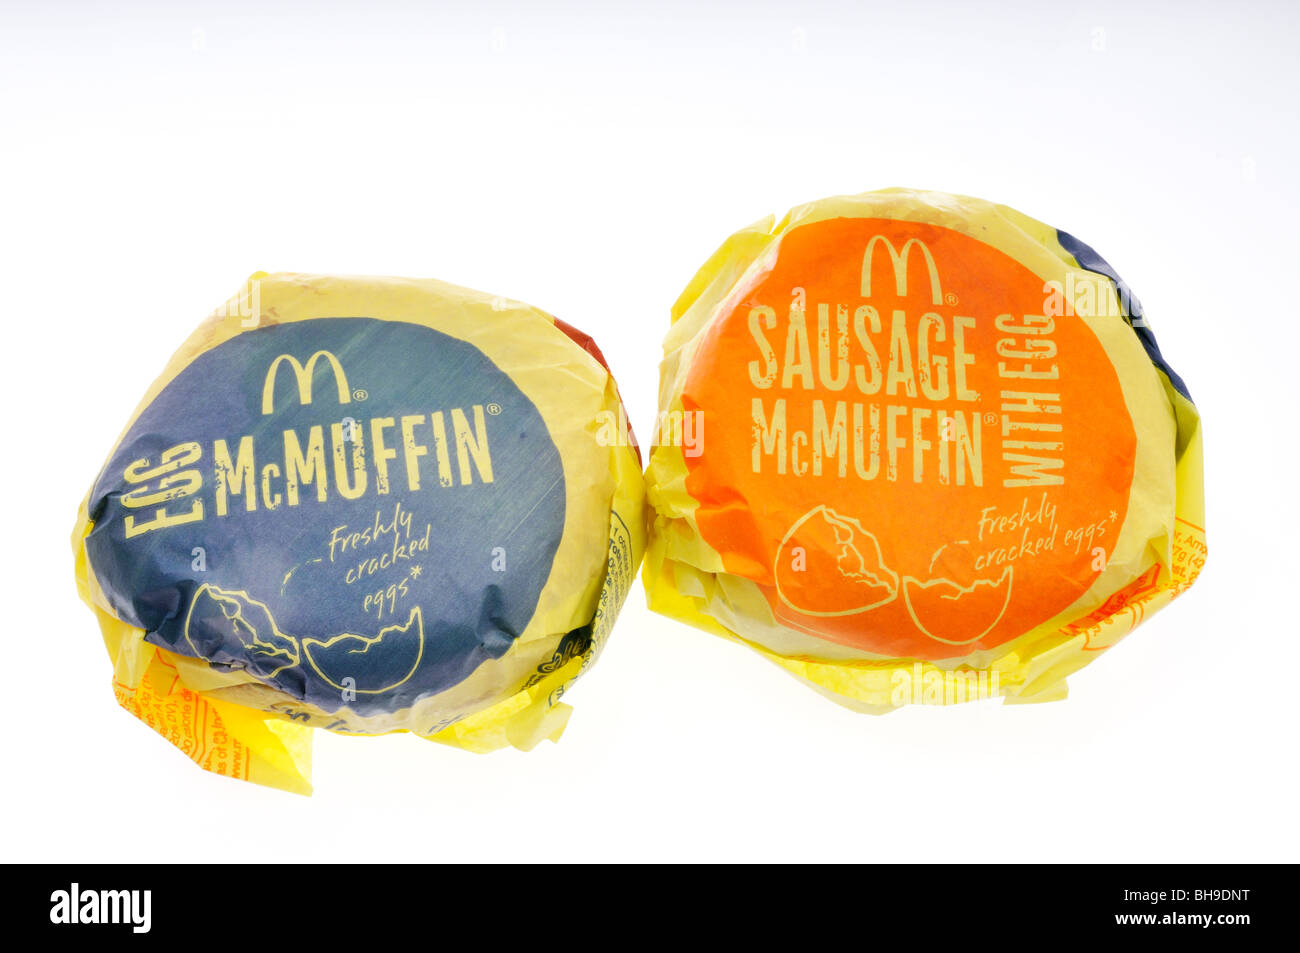 McDonald's Egg McMuffin and sausage McMuffin breakfast sandwiches in wrappers on white background. Cut out - Stock Image